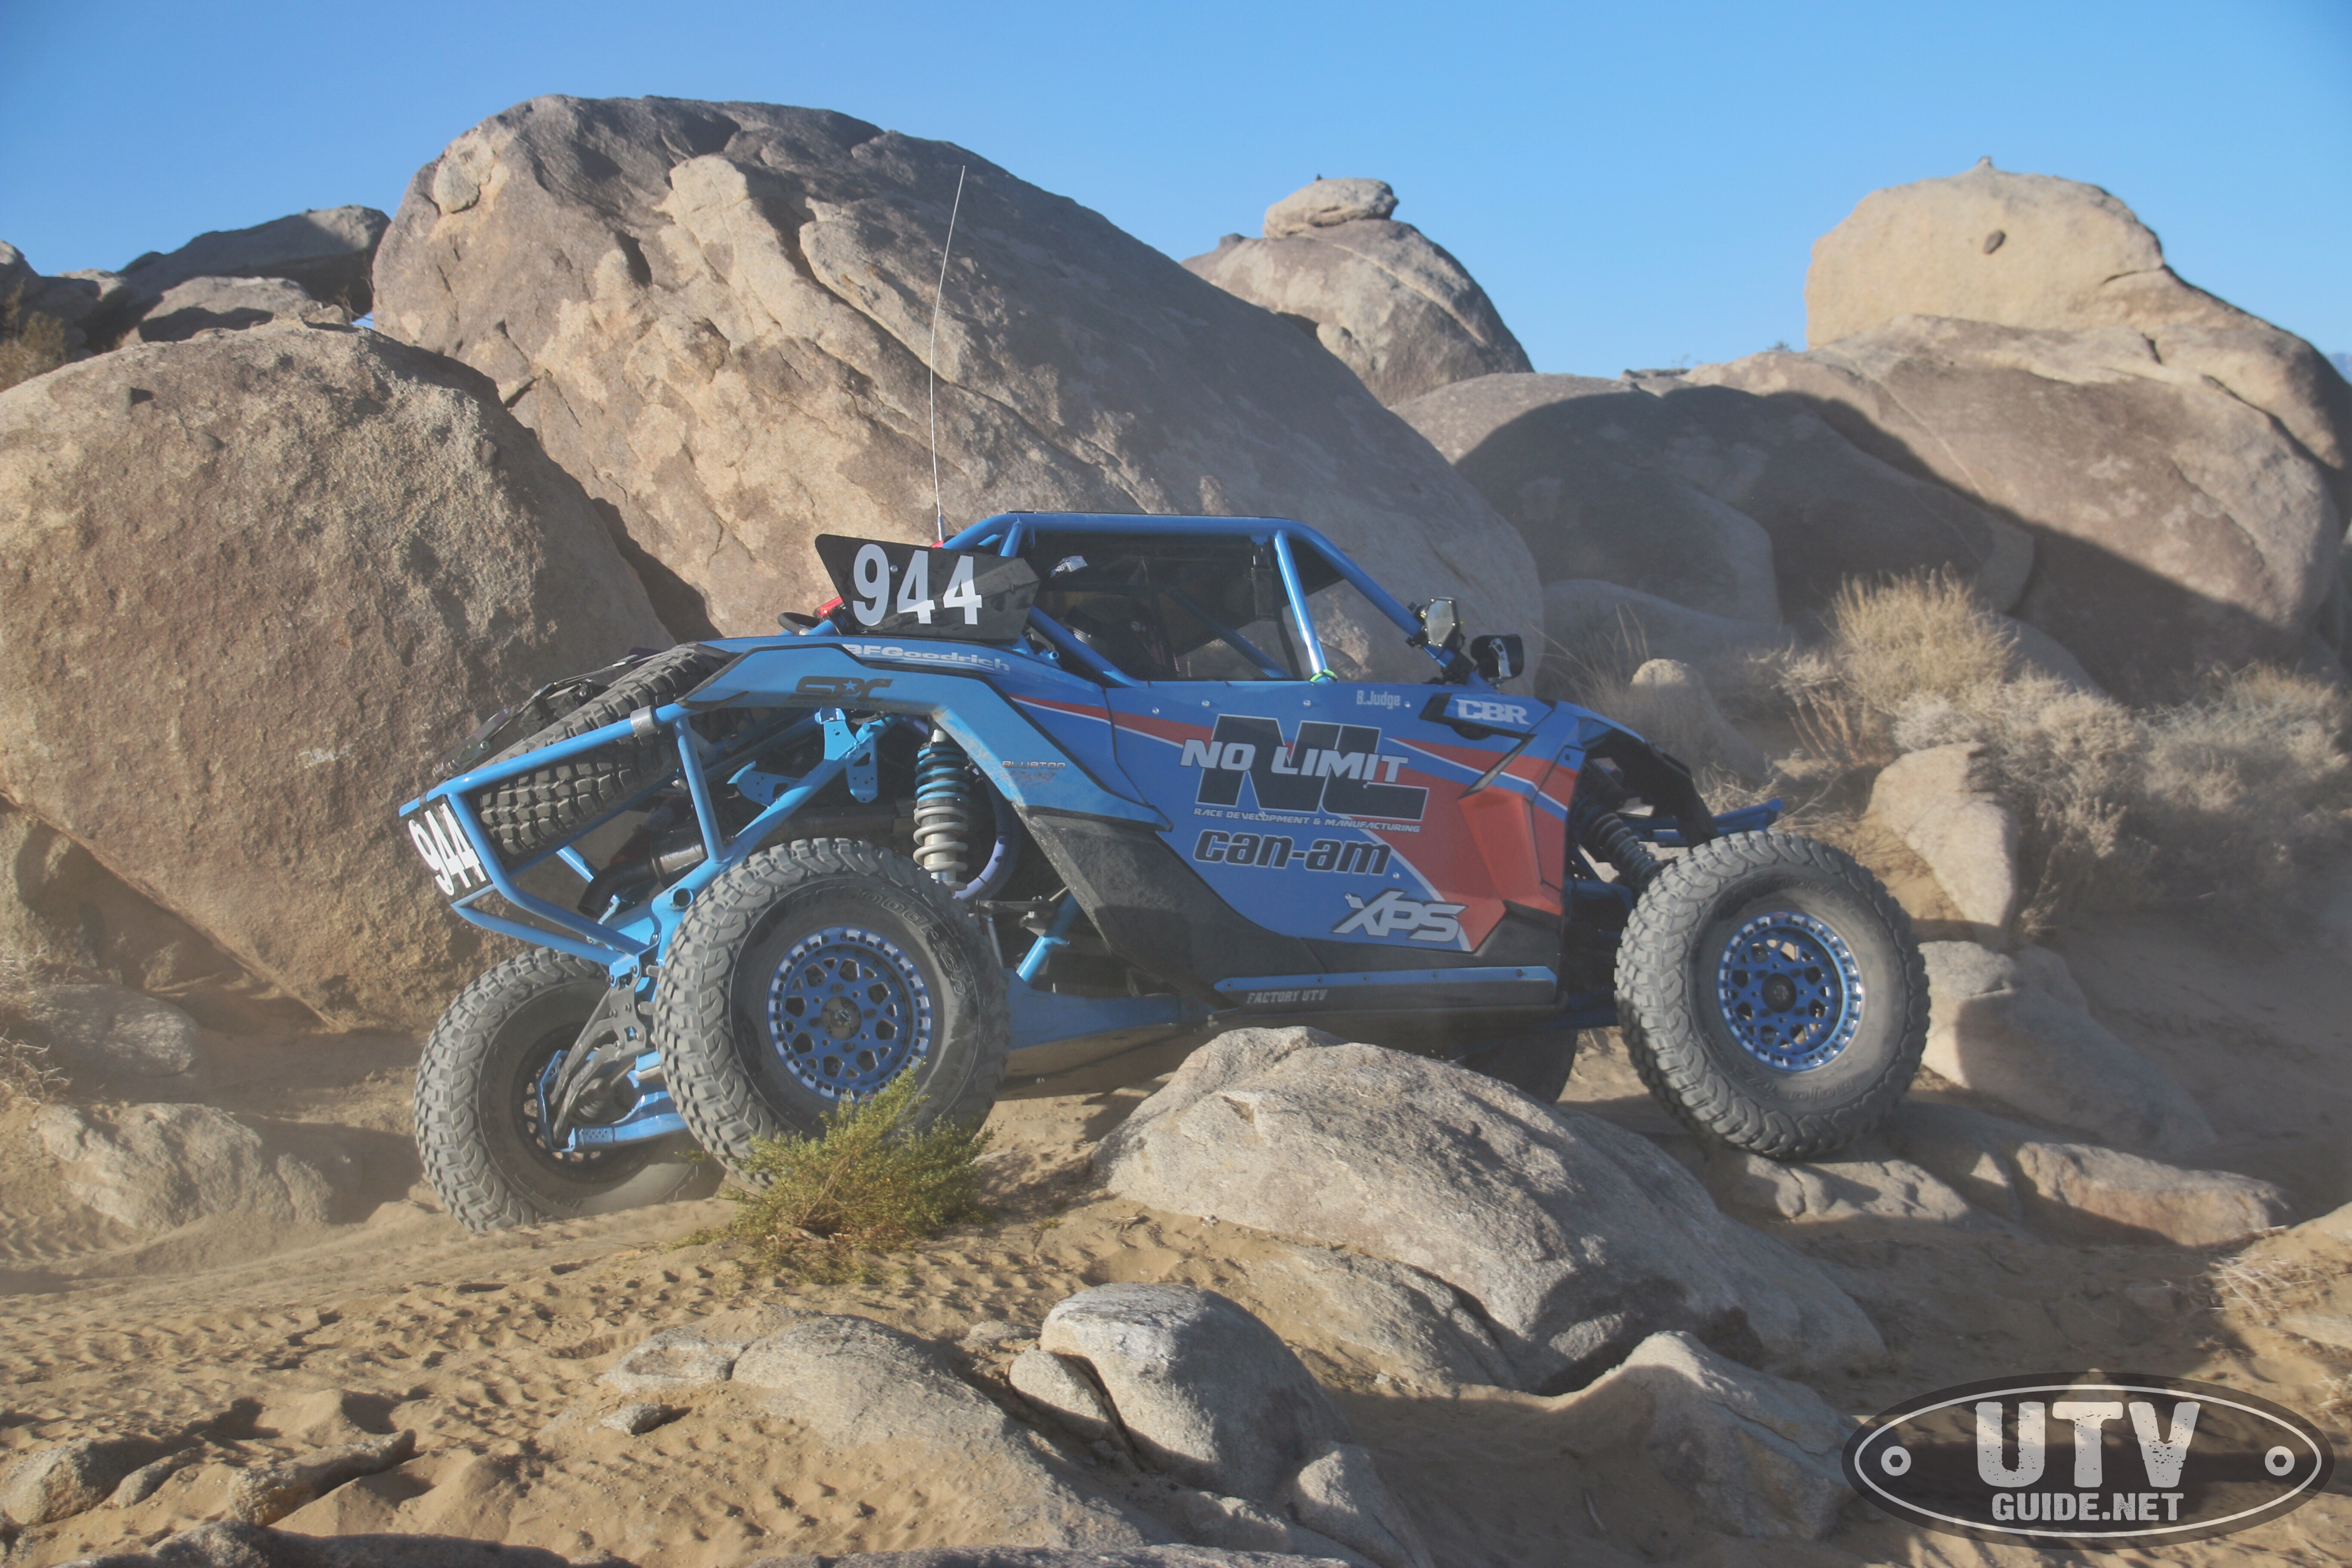 No Limit Rd Sweeps Utv Class At 2018 Ultra4 Stampede Race Utvguide